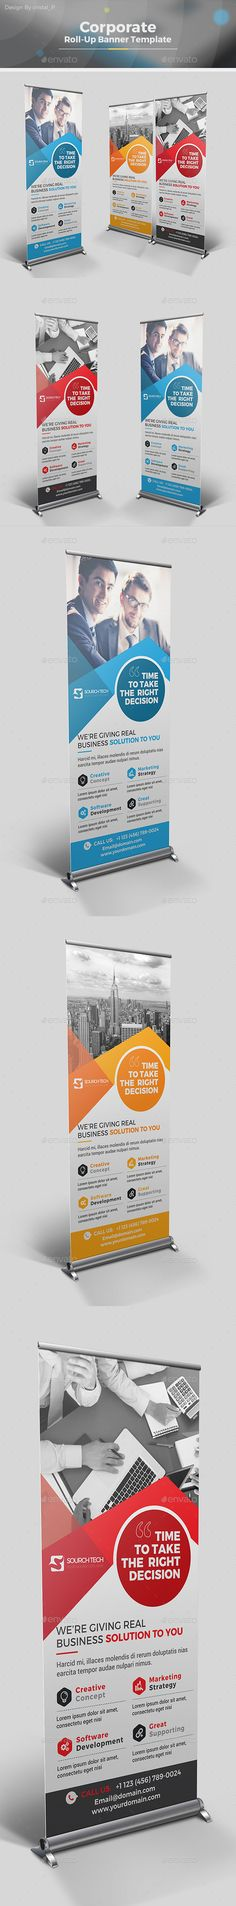 Corporate Roll-up Banner Template AI Illustrator